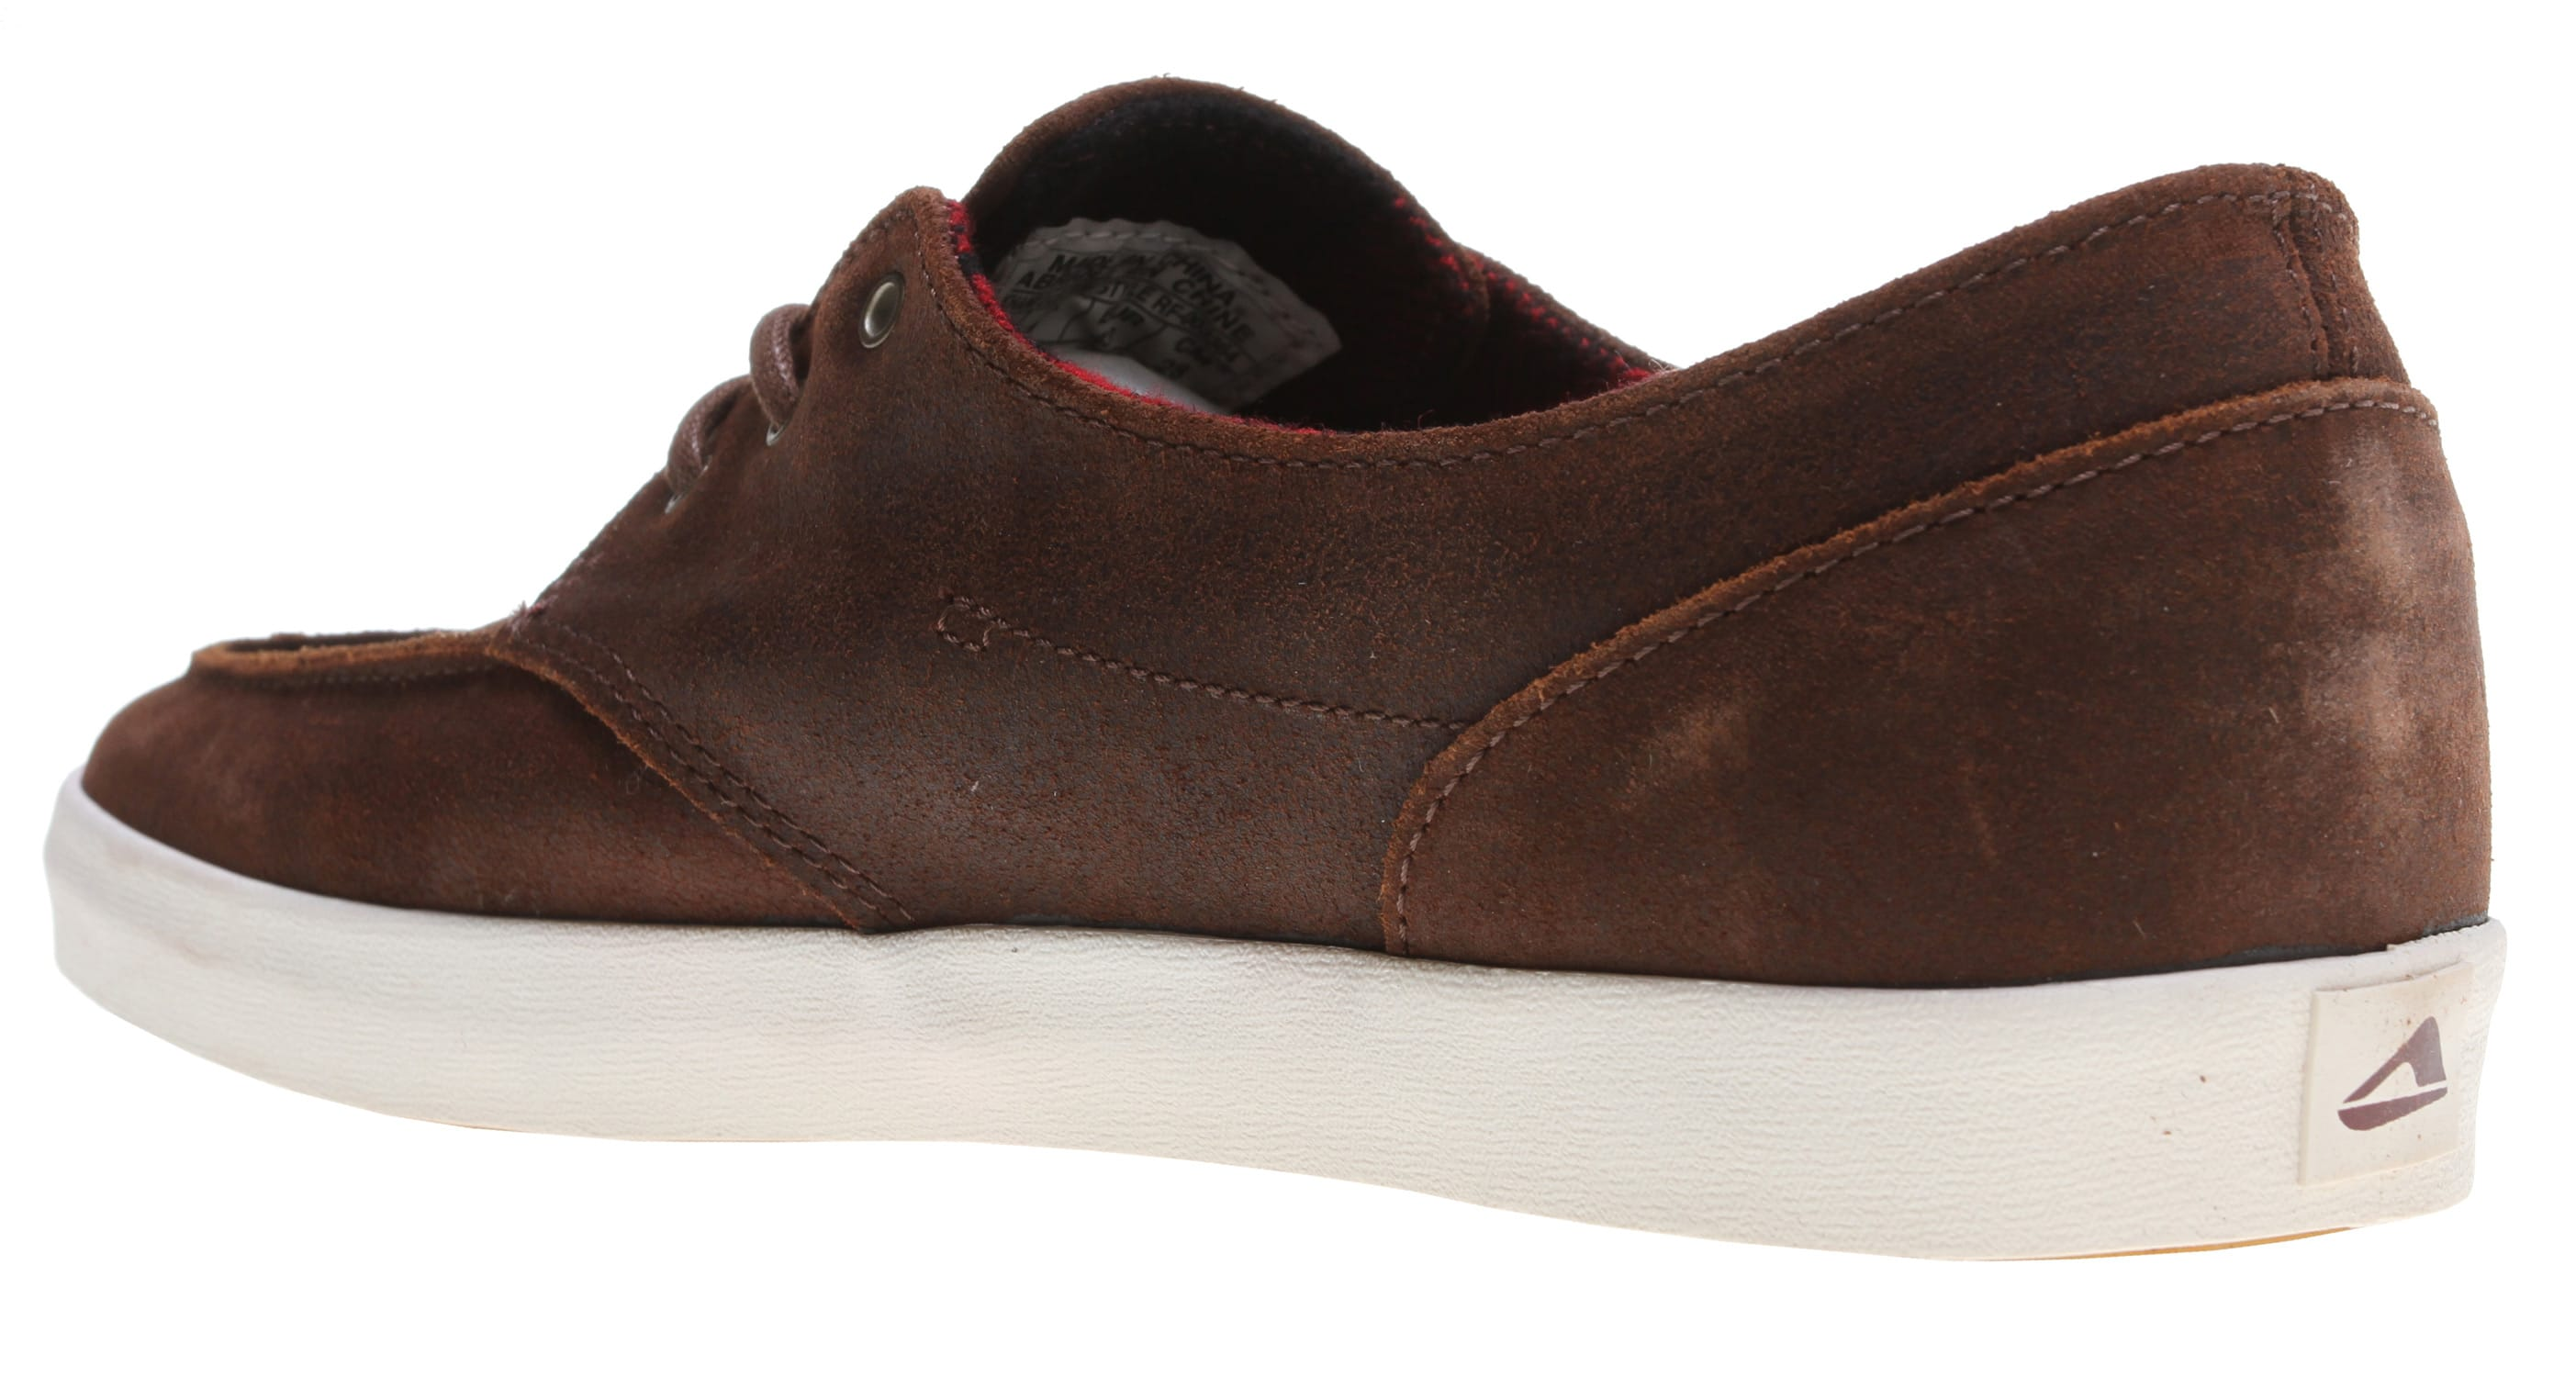 74858ef09e050 Reef Deckhand 2 Leather Shoes - thumbnail 3